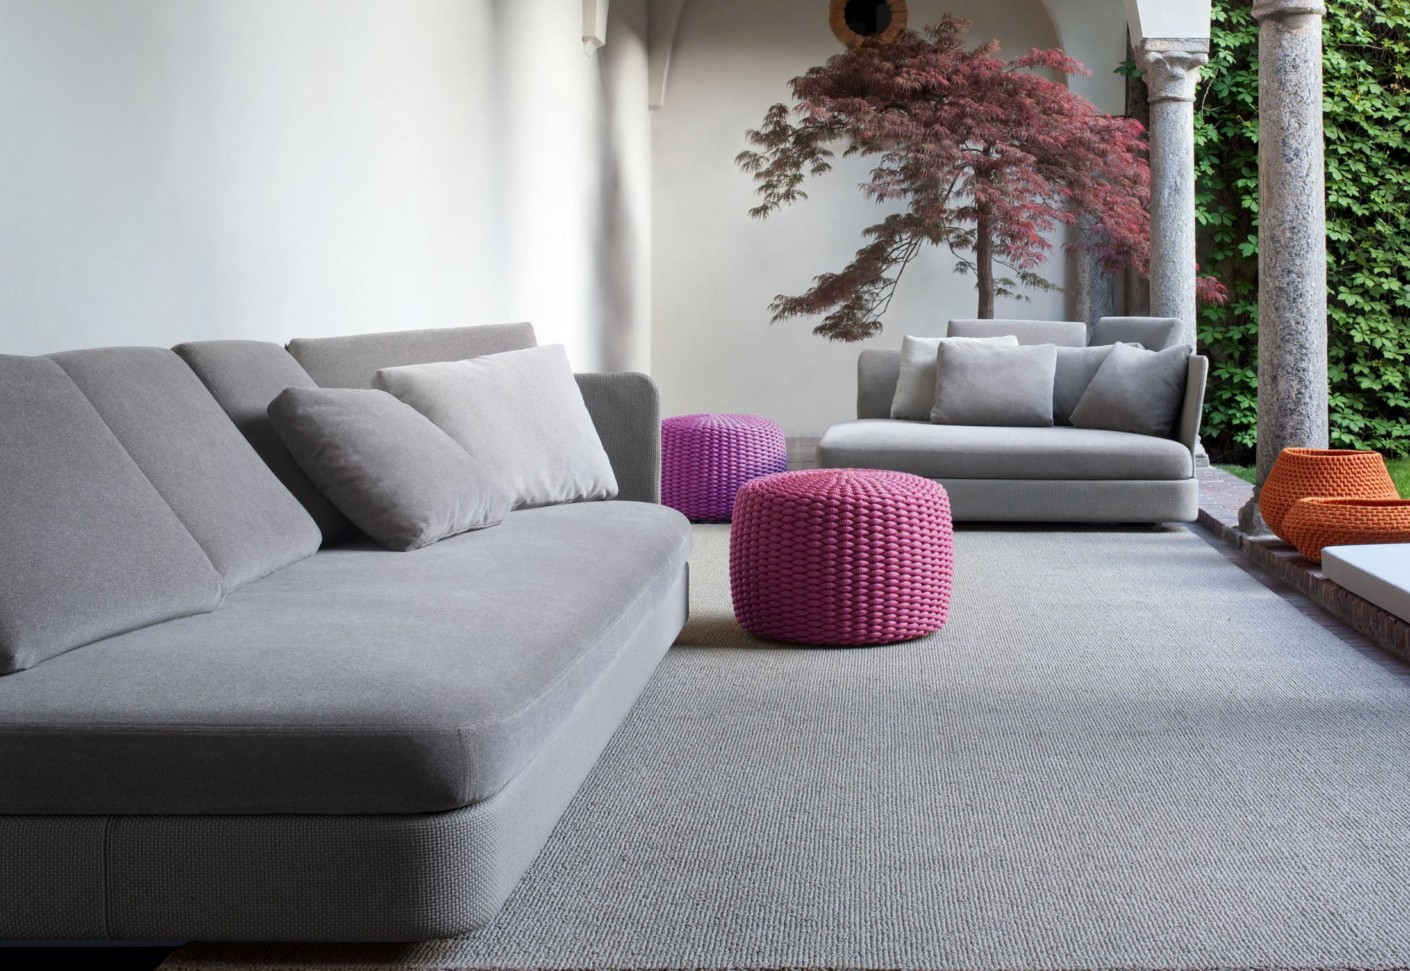 Cove Sofa By Paola Lenti Stylepark